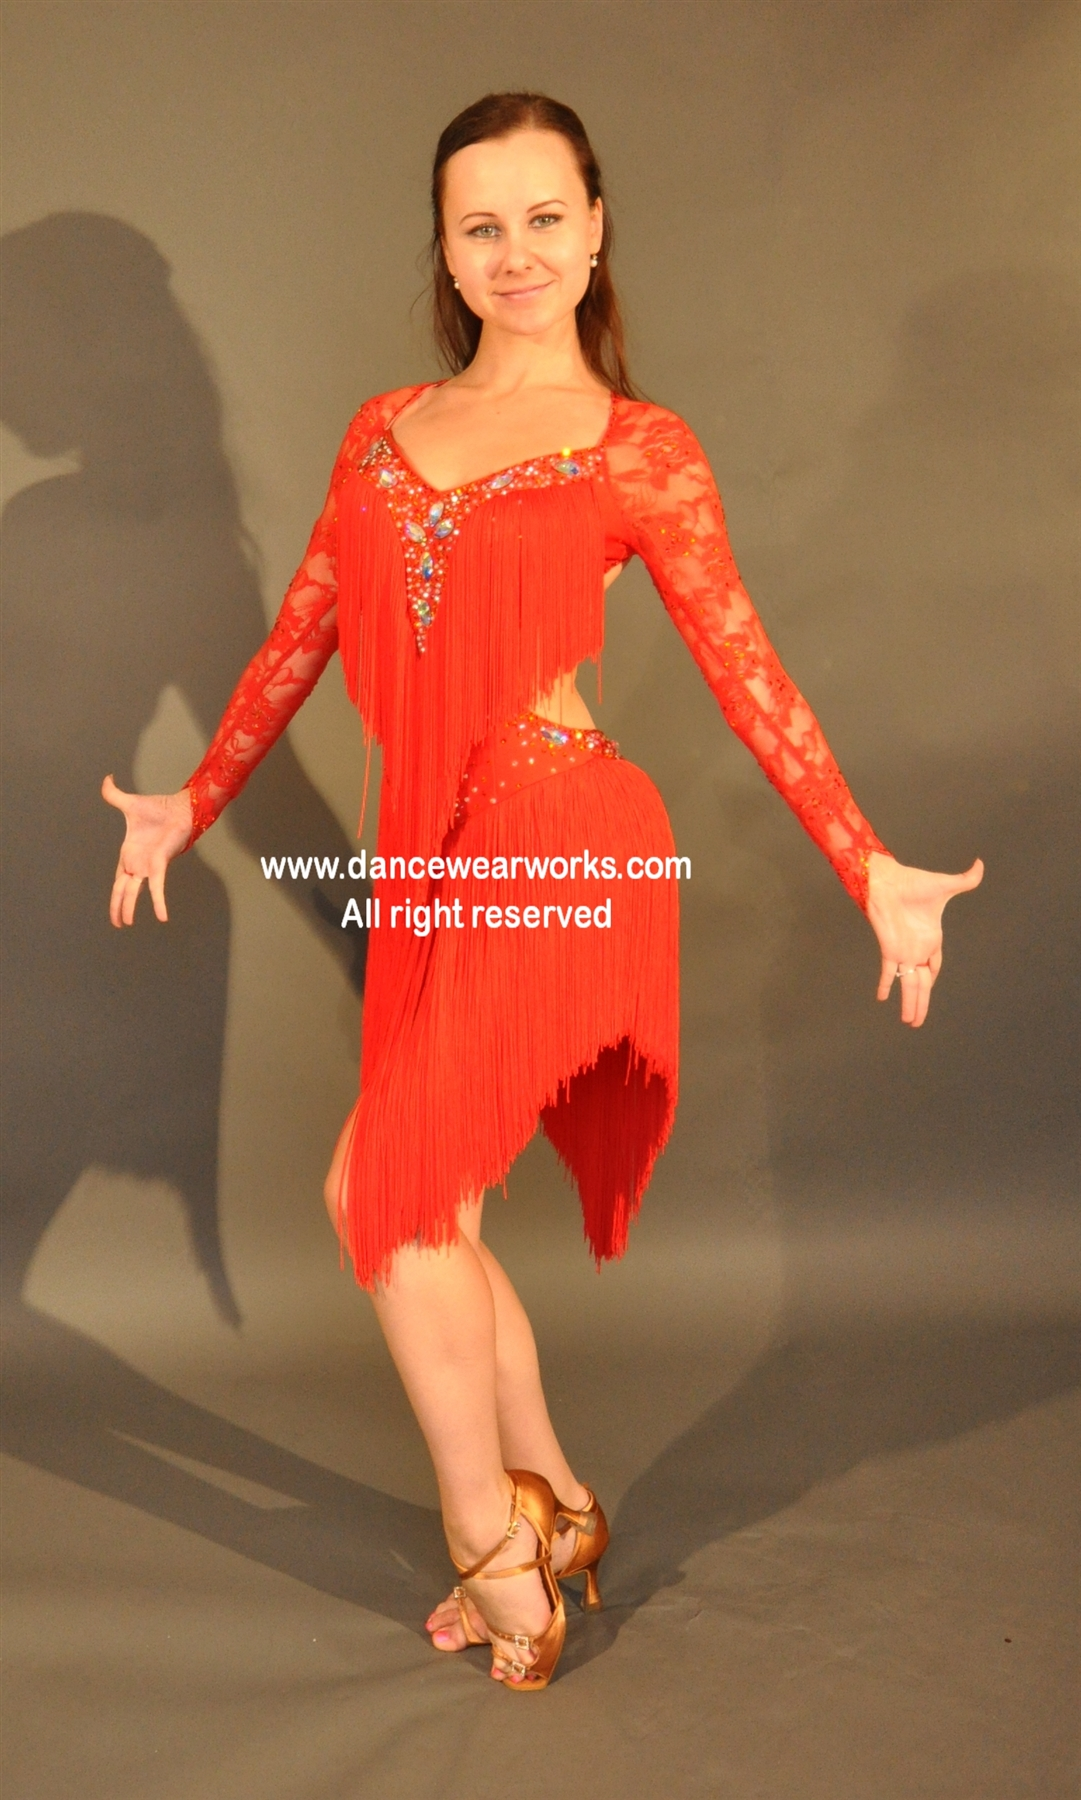 806baa6d6c0 Sexy red fringe Latin dress